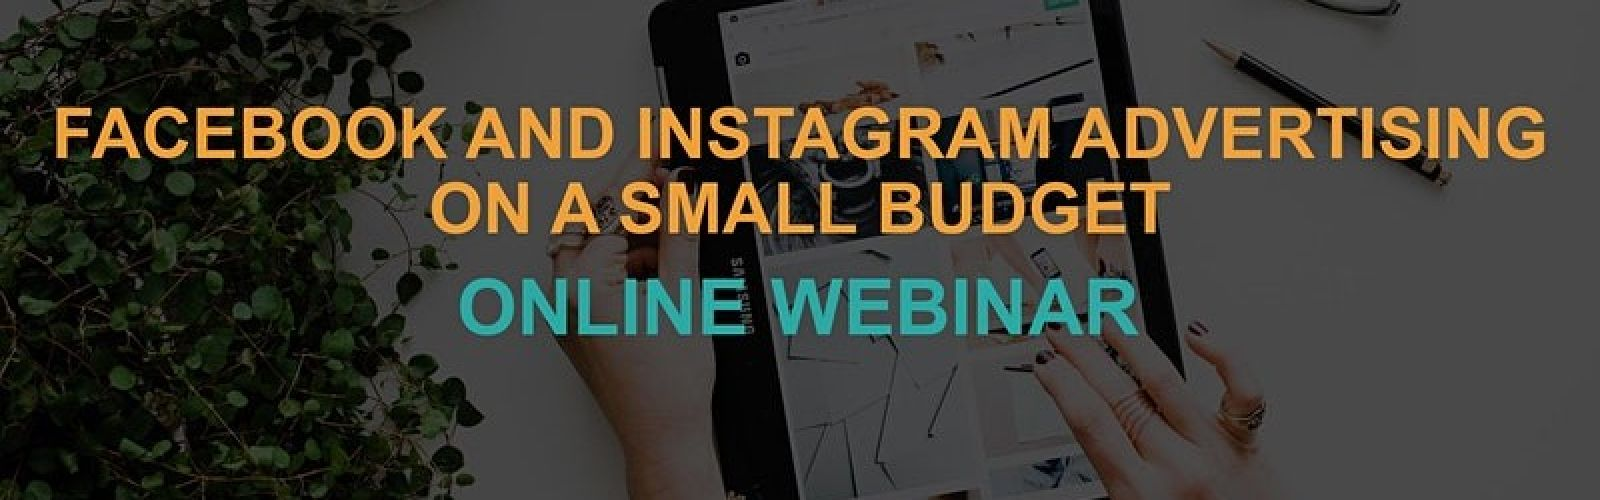 Facebook and Instagram Advertising on a Small Budget: